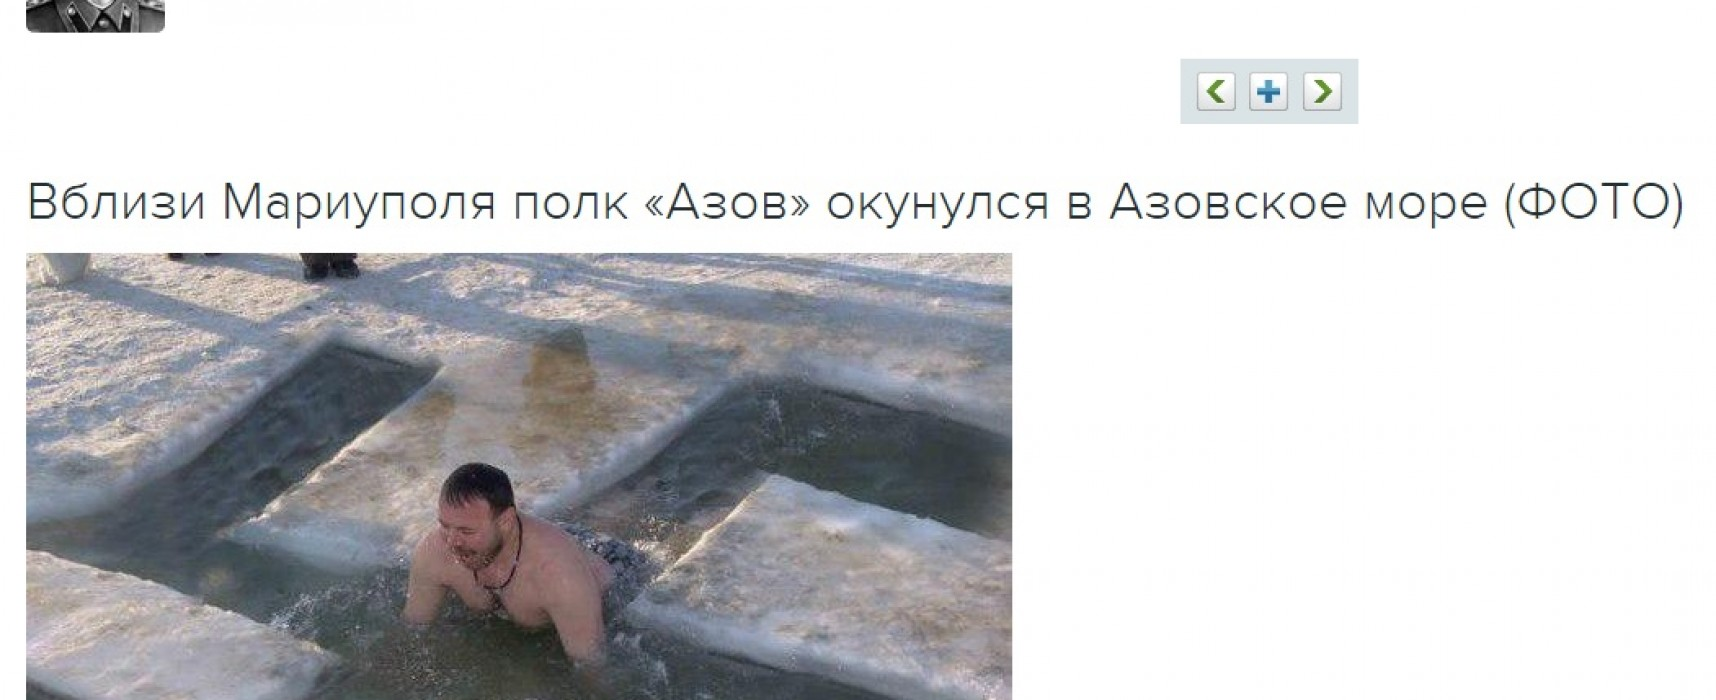 Photo Fake: The Azov Regiment Bathed in an Ice-Hole in the Form of Swastika